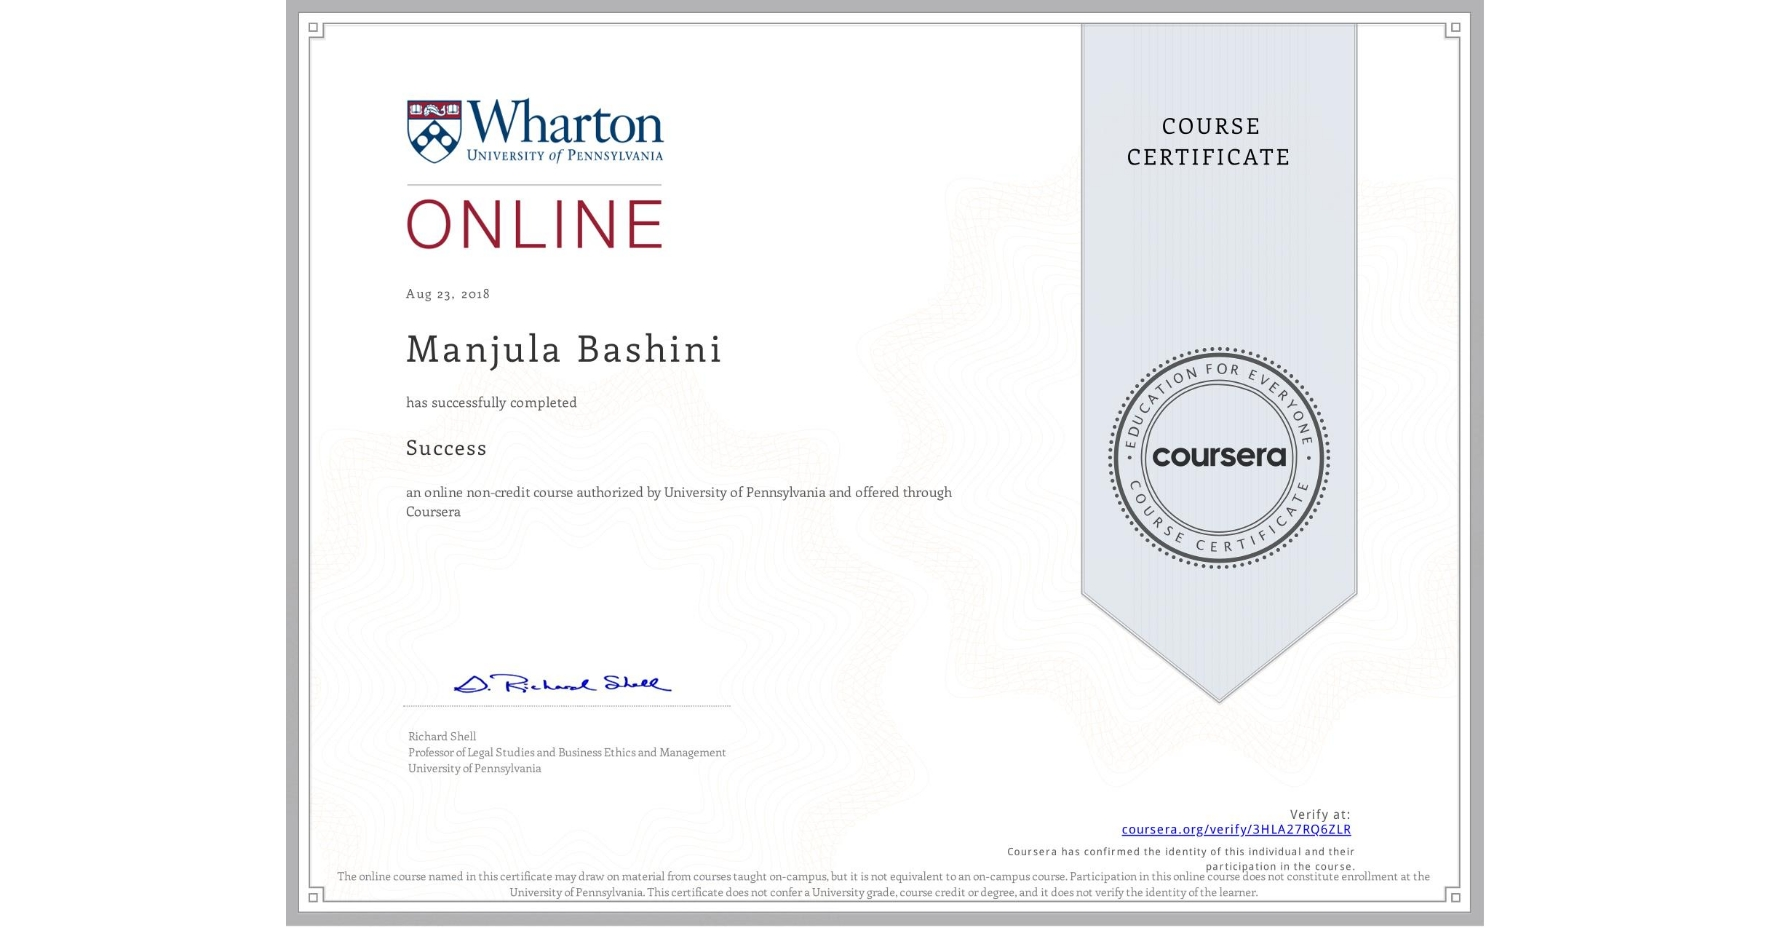 View certificate for Manjula Bashini  , Success, an online non-credit course authorized by University of Pennsylvania and offered through Coursera